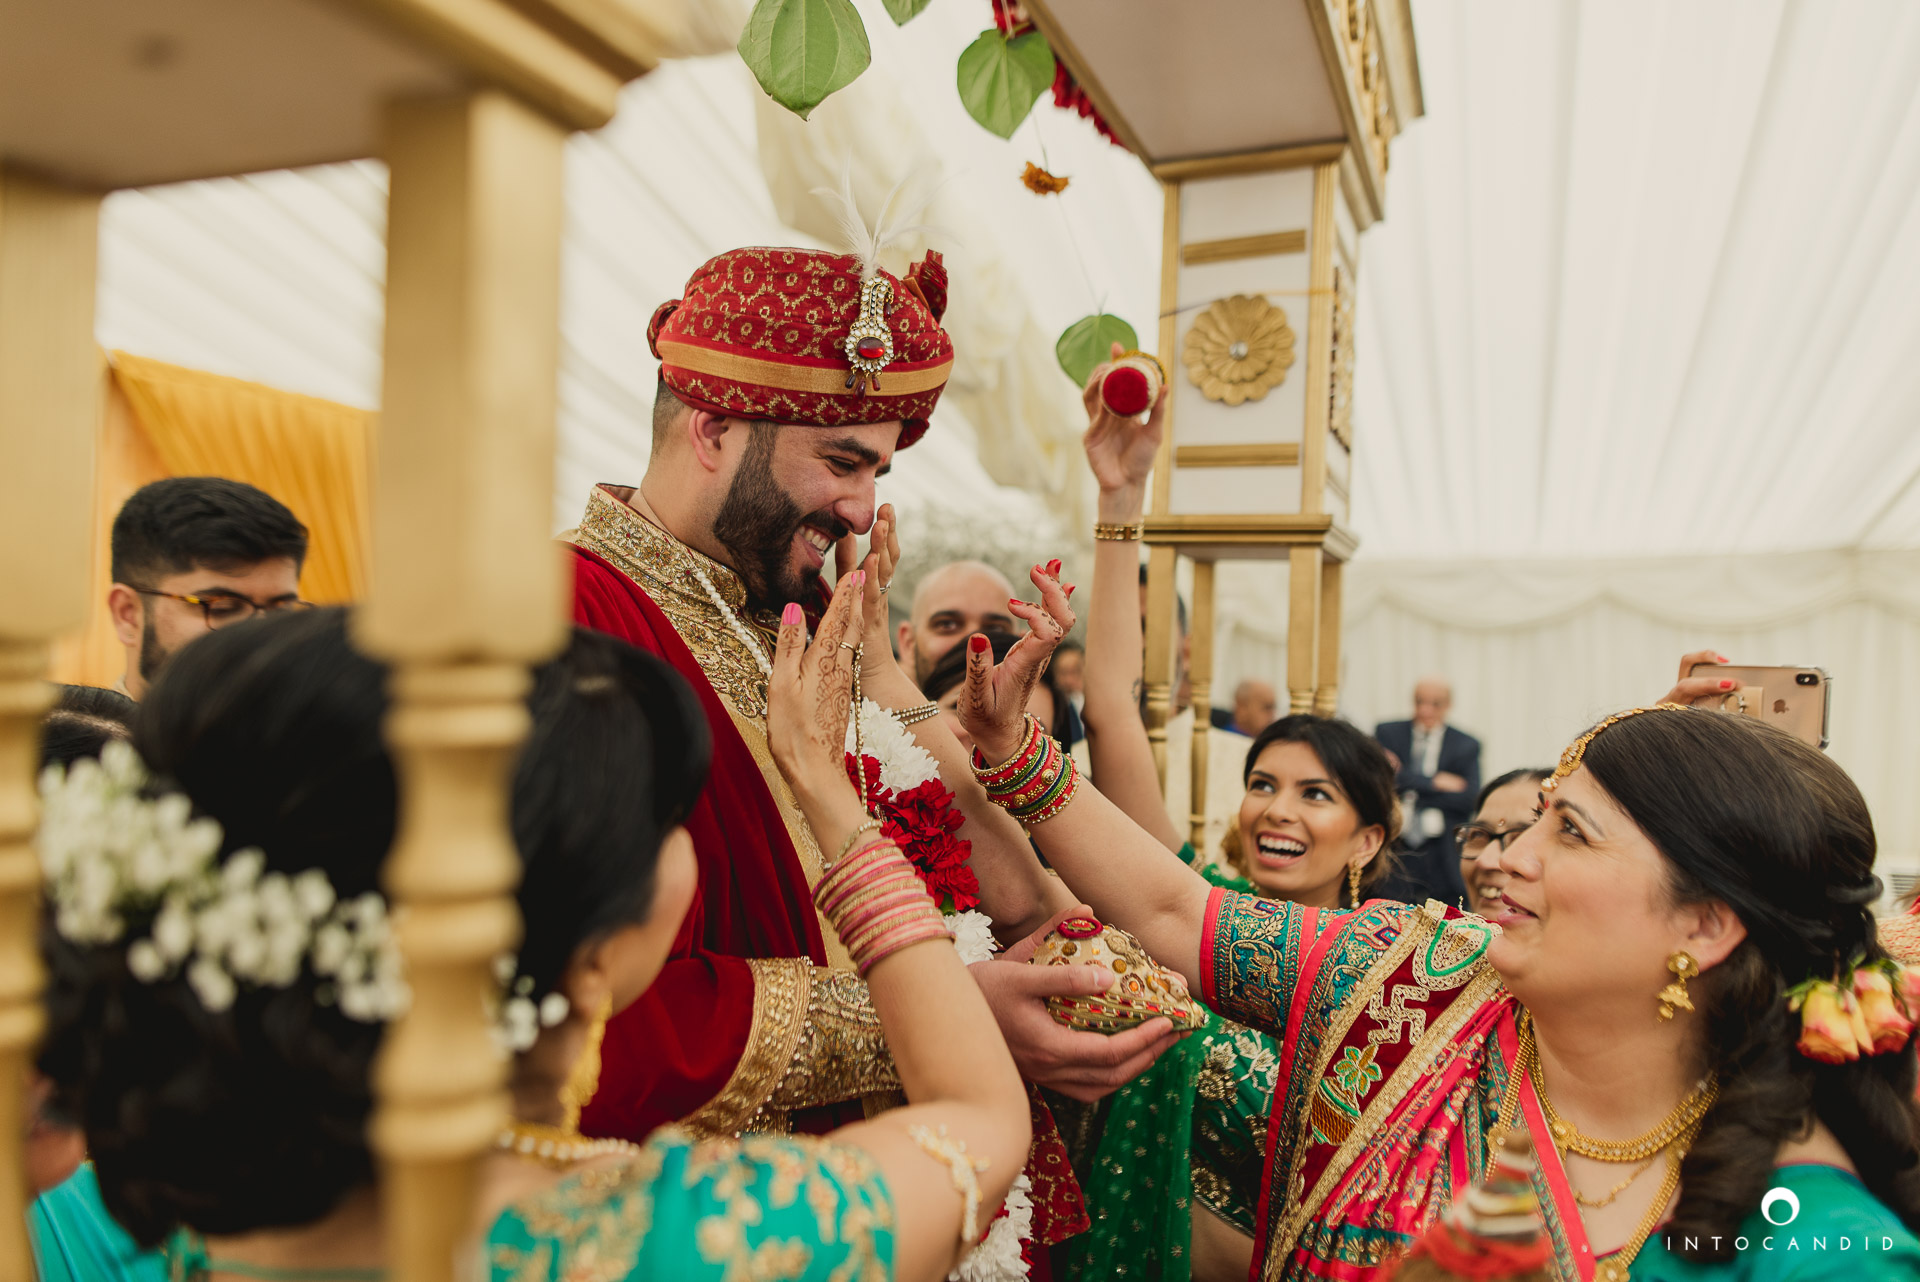 London_Wedding_Photographer_Intocandid_Photography_Ketan & Manasvi_33.JPG